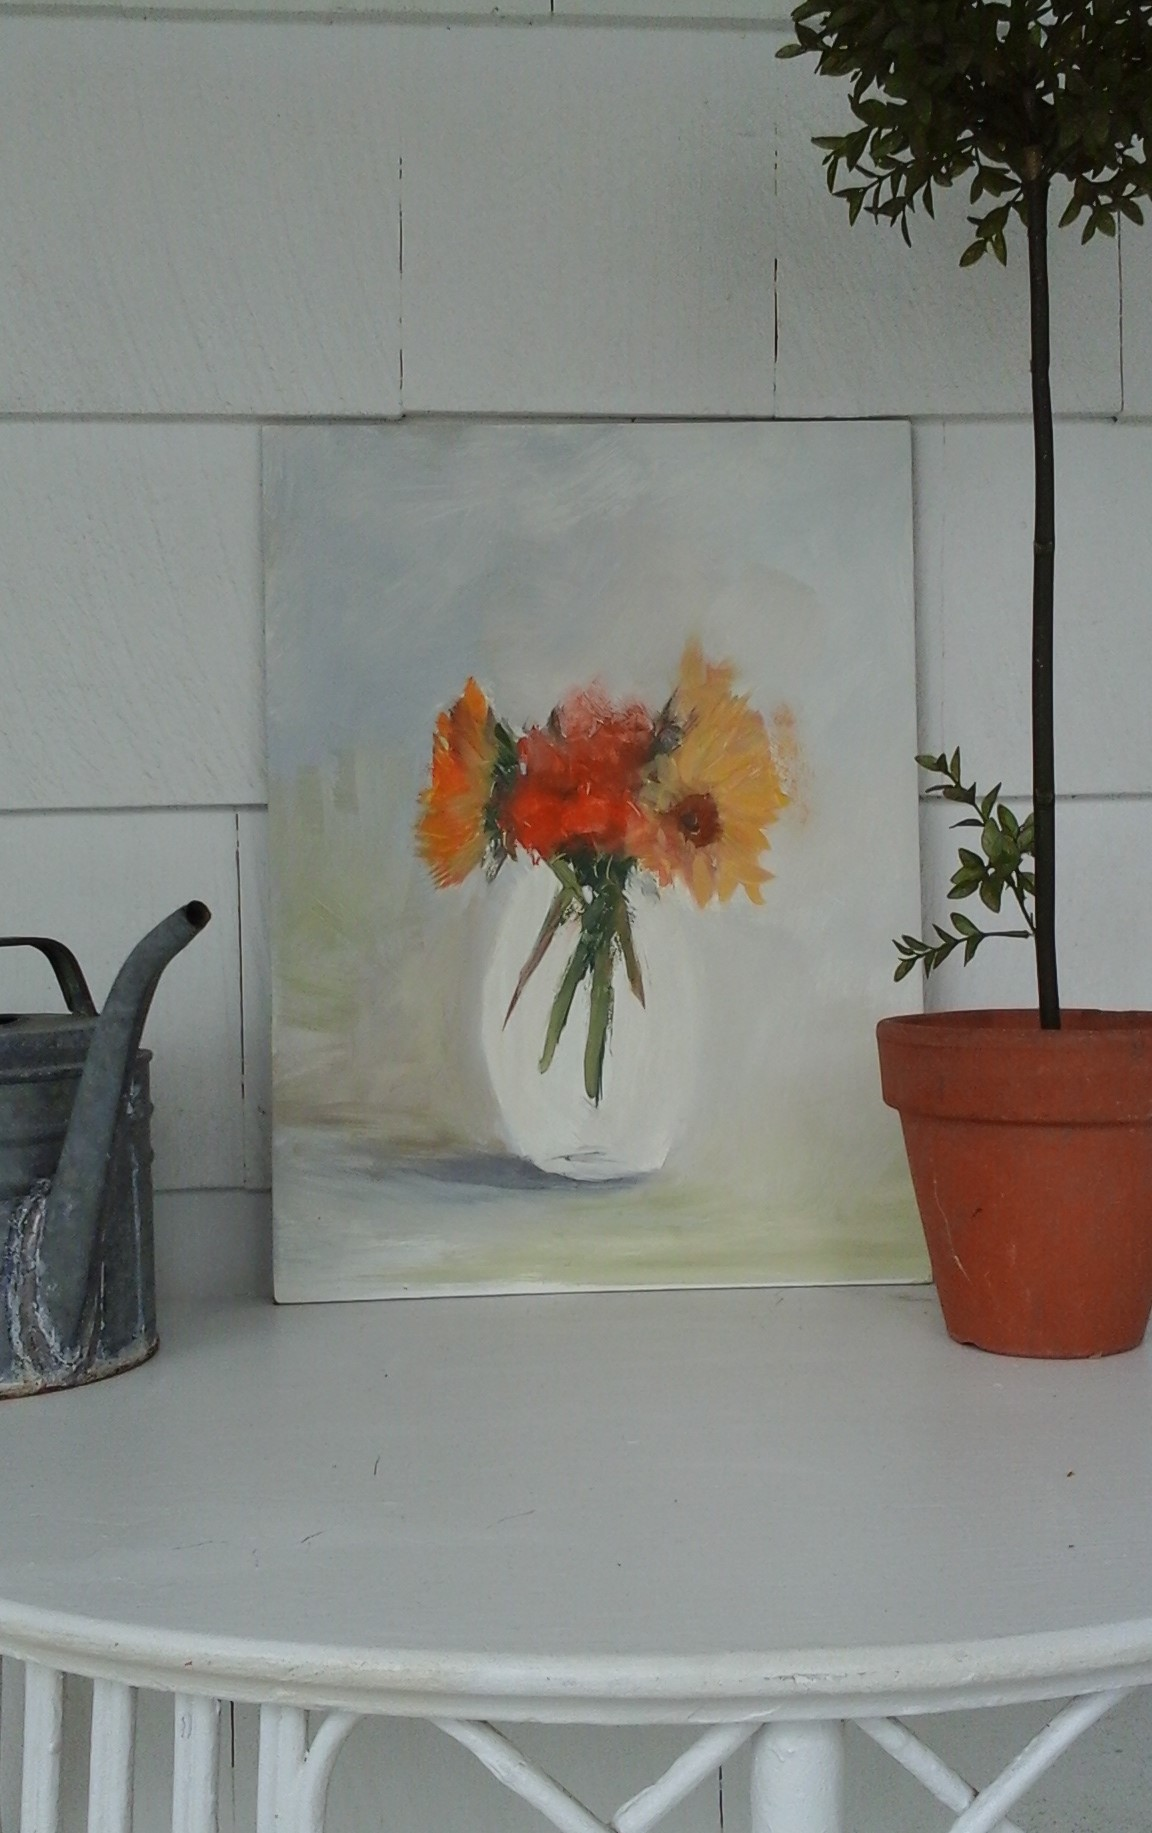 A sunflower painting I started a while back...still needs work on the vase and background but I'm liking the looseness and spontaneity of the flowers...